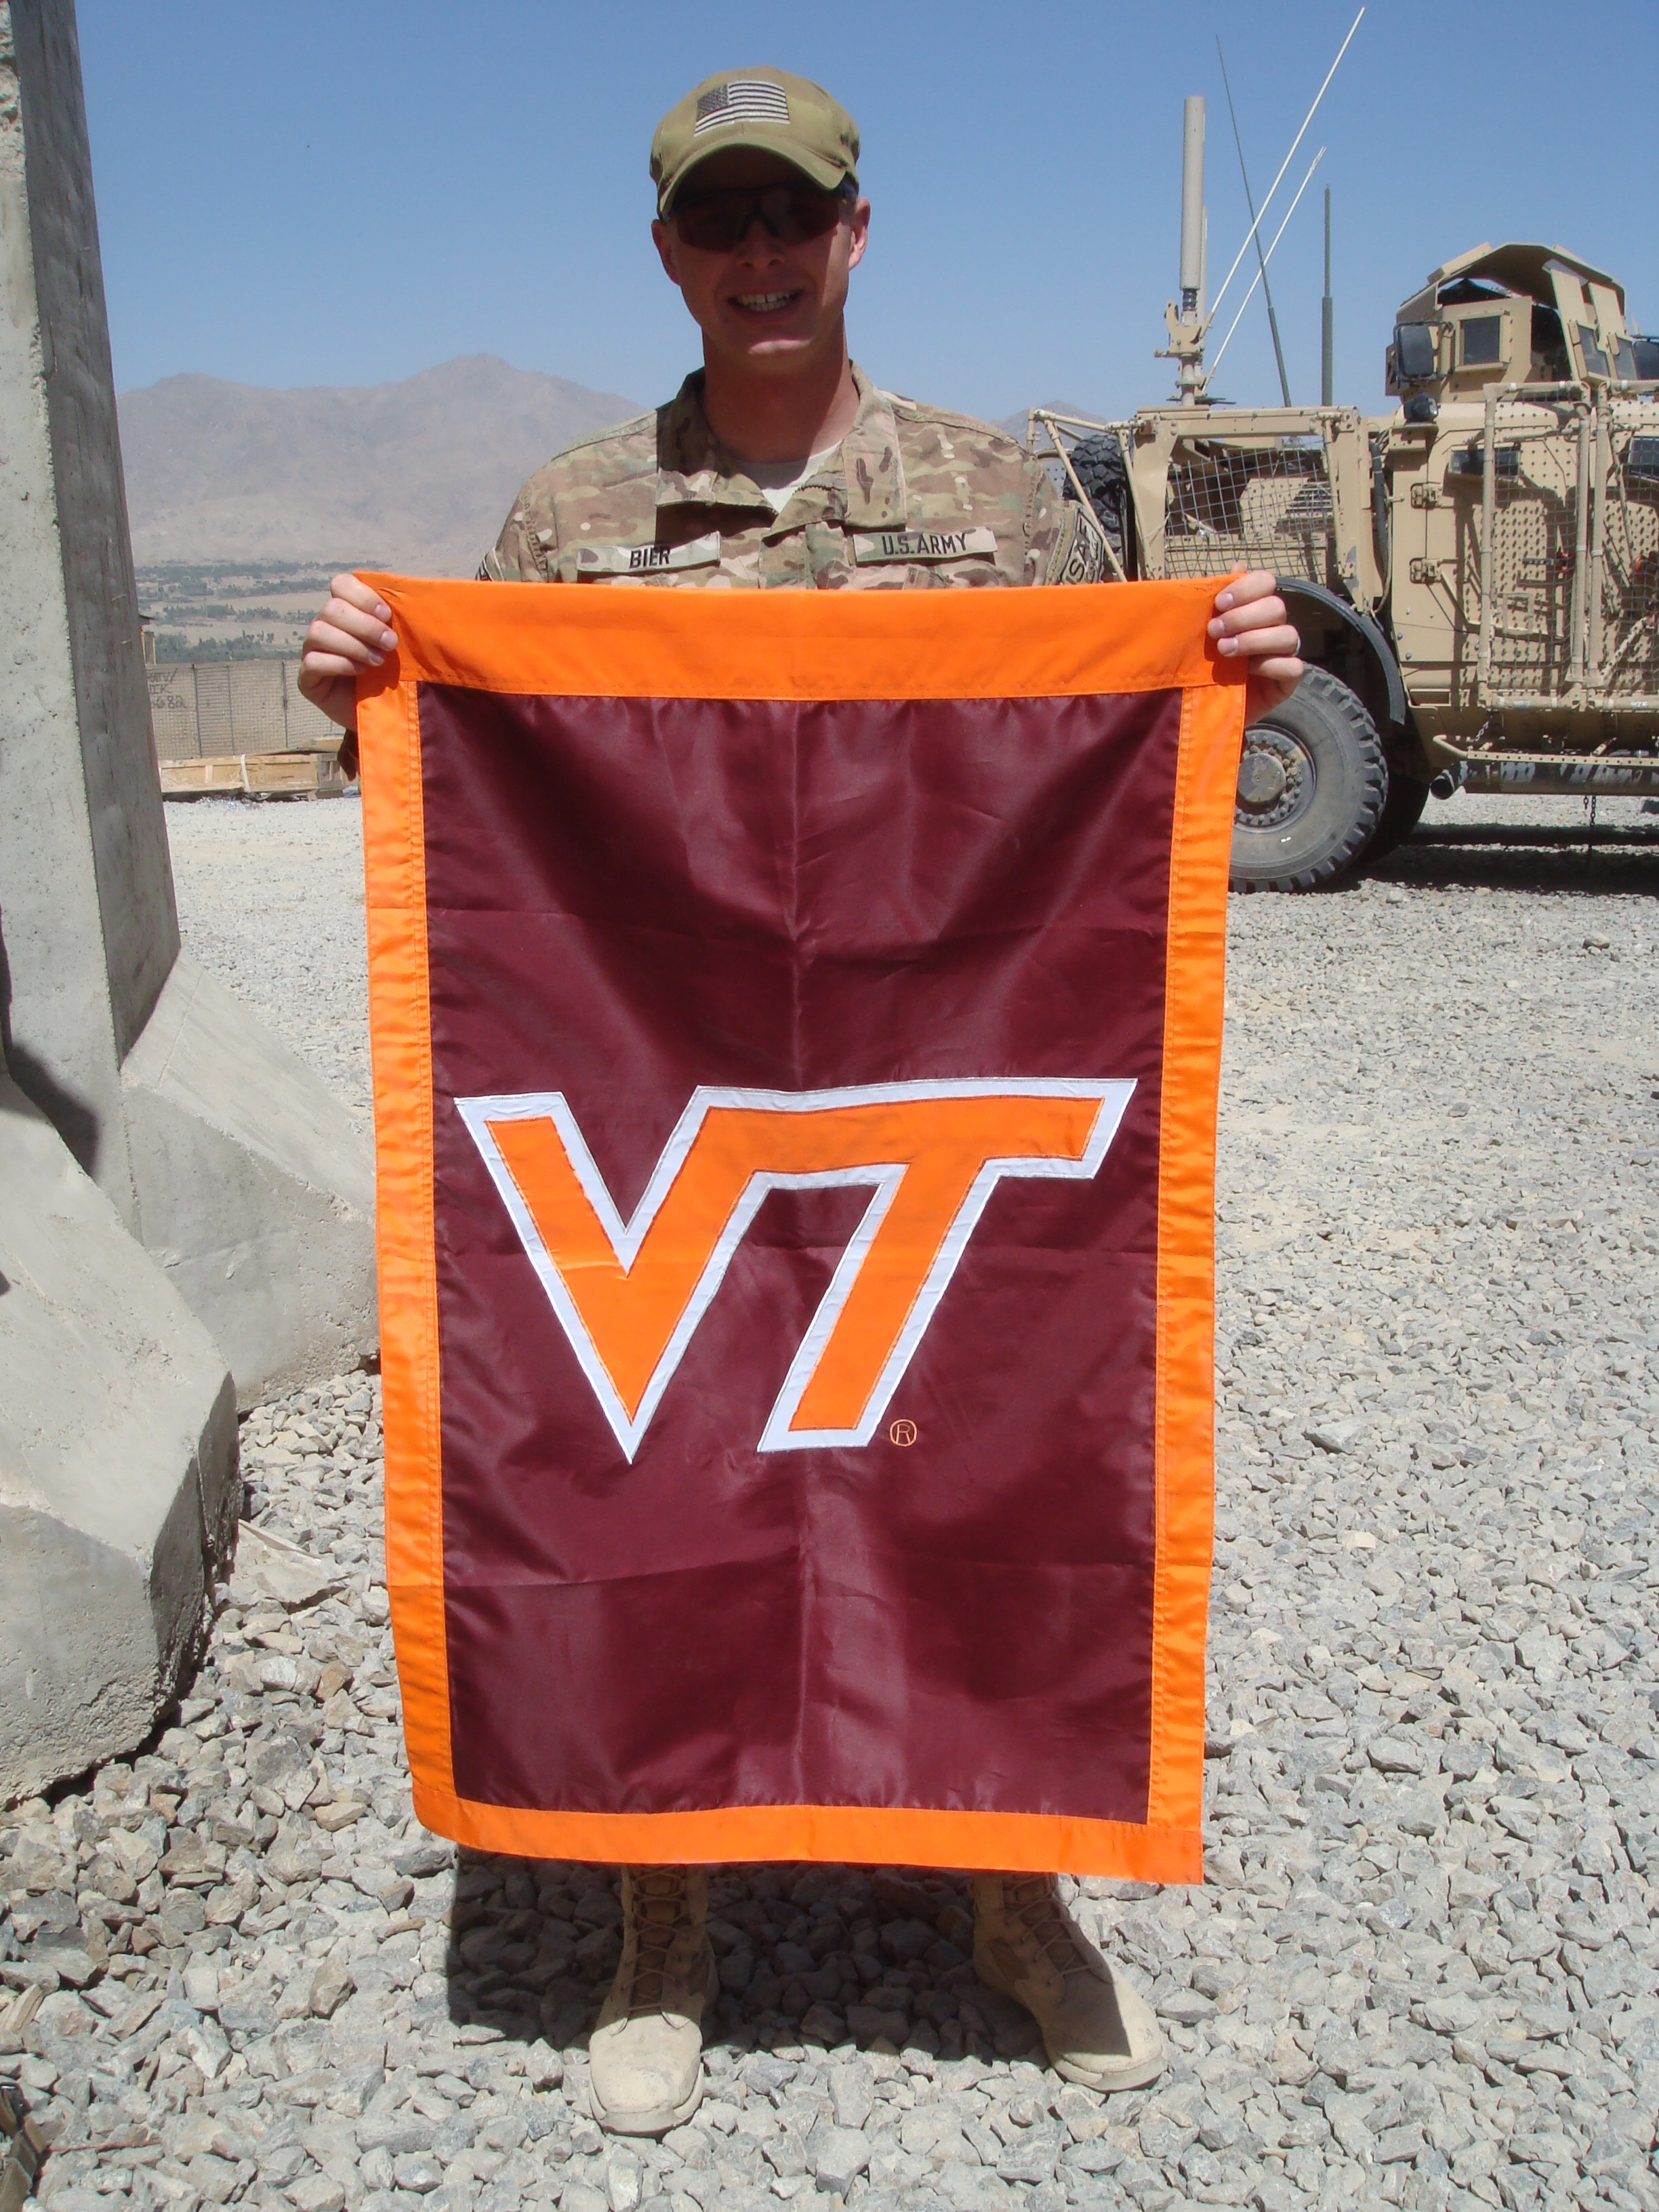 1st Lt. Nathan Bier, U.S. Army, Virginia Tech Corps of Cadets Class of 2011 in Afghanistan